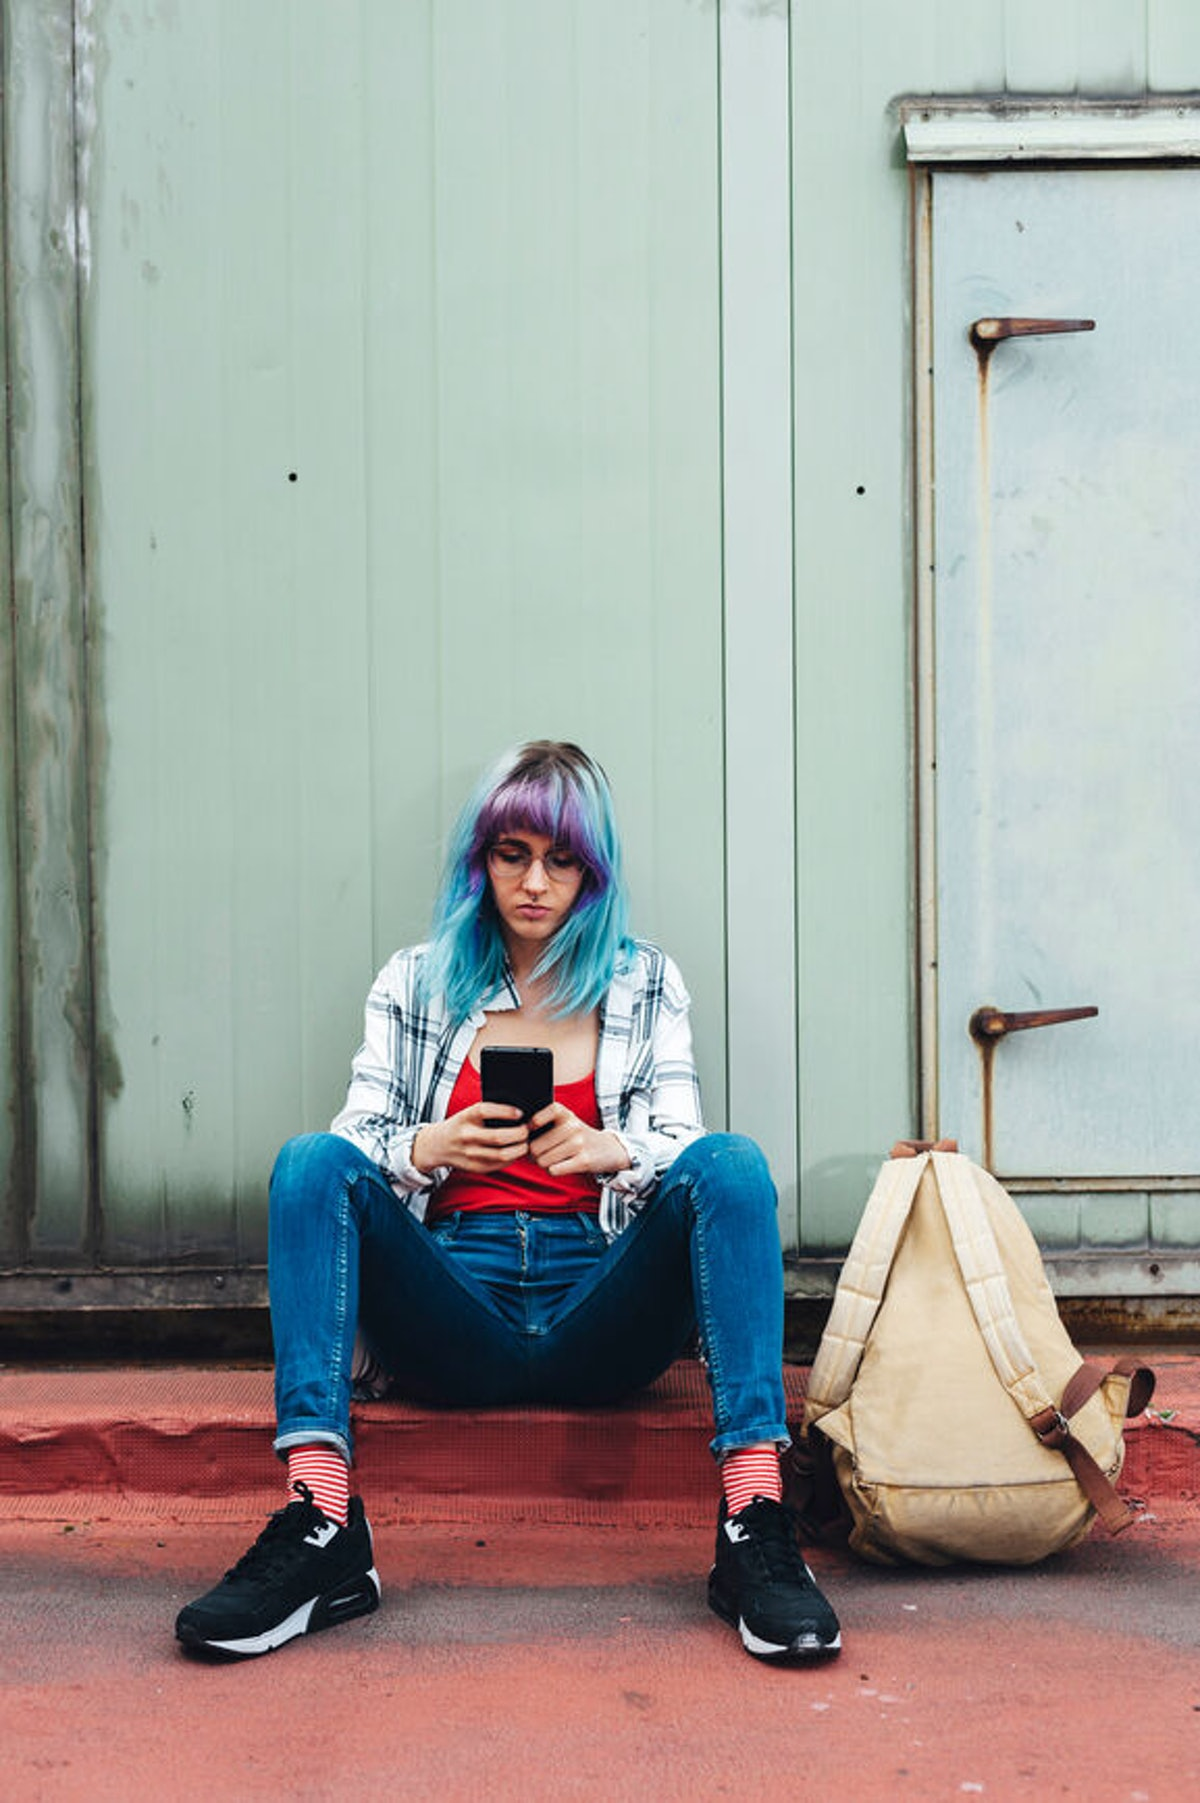 A girl with blue and purple hair sits on a red sidewalk in street clothes and types on her phone.